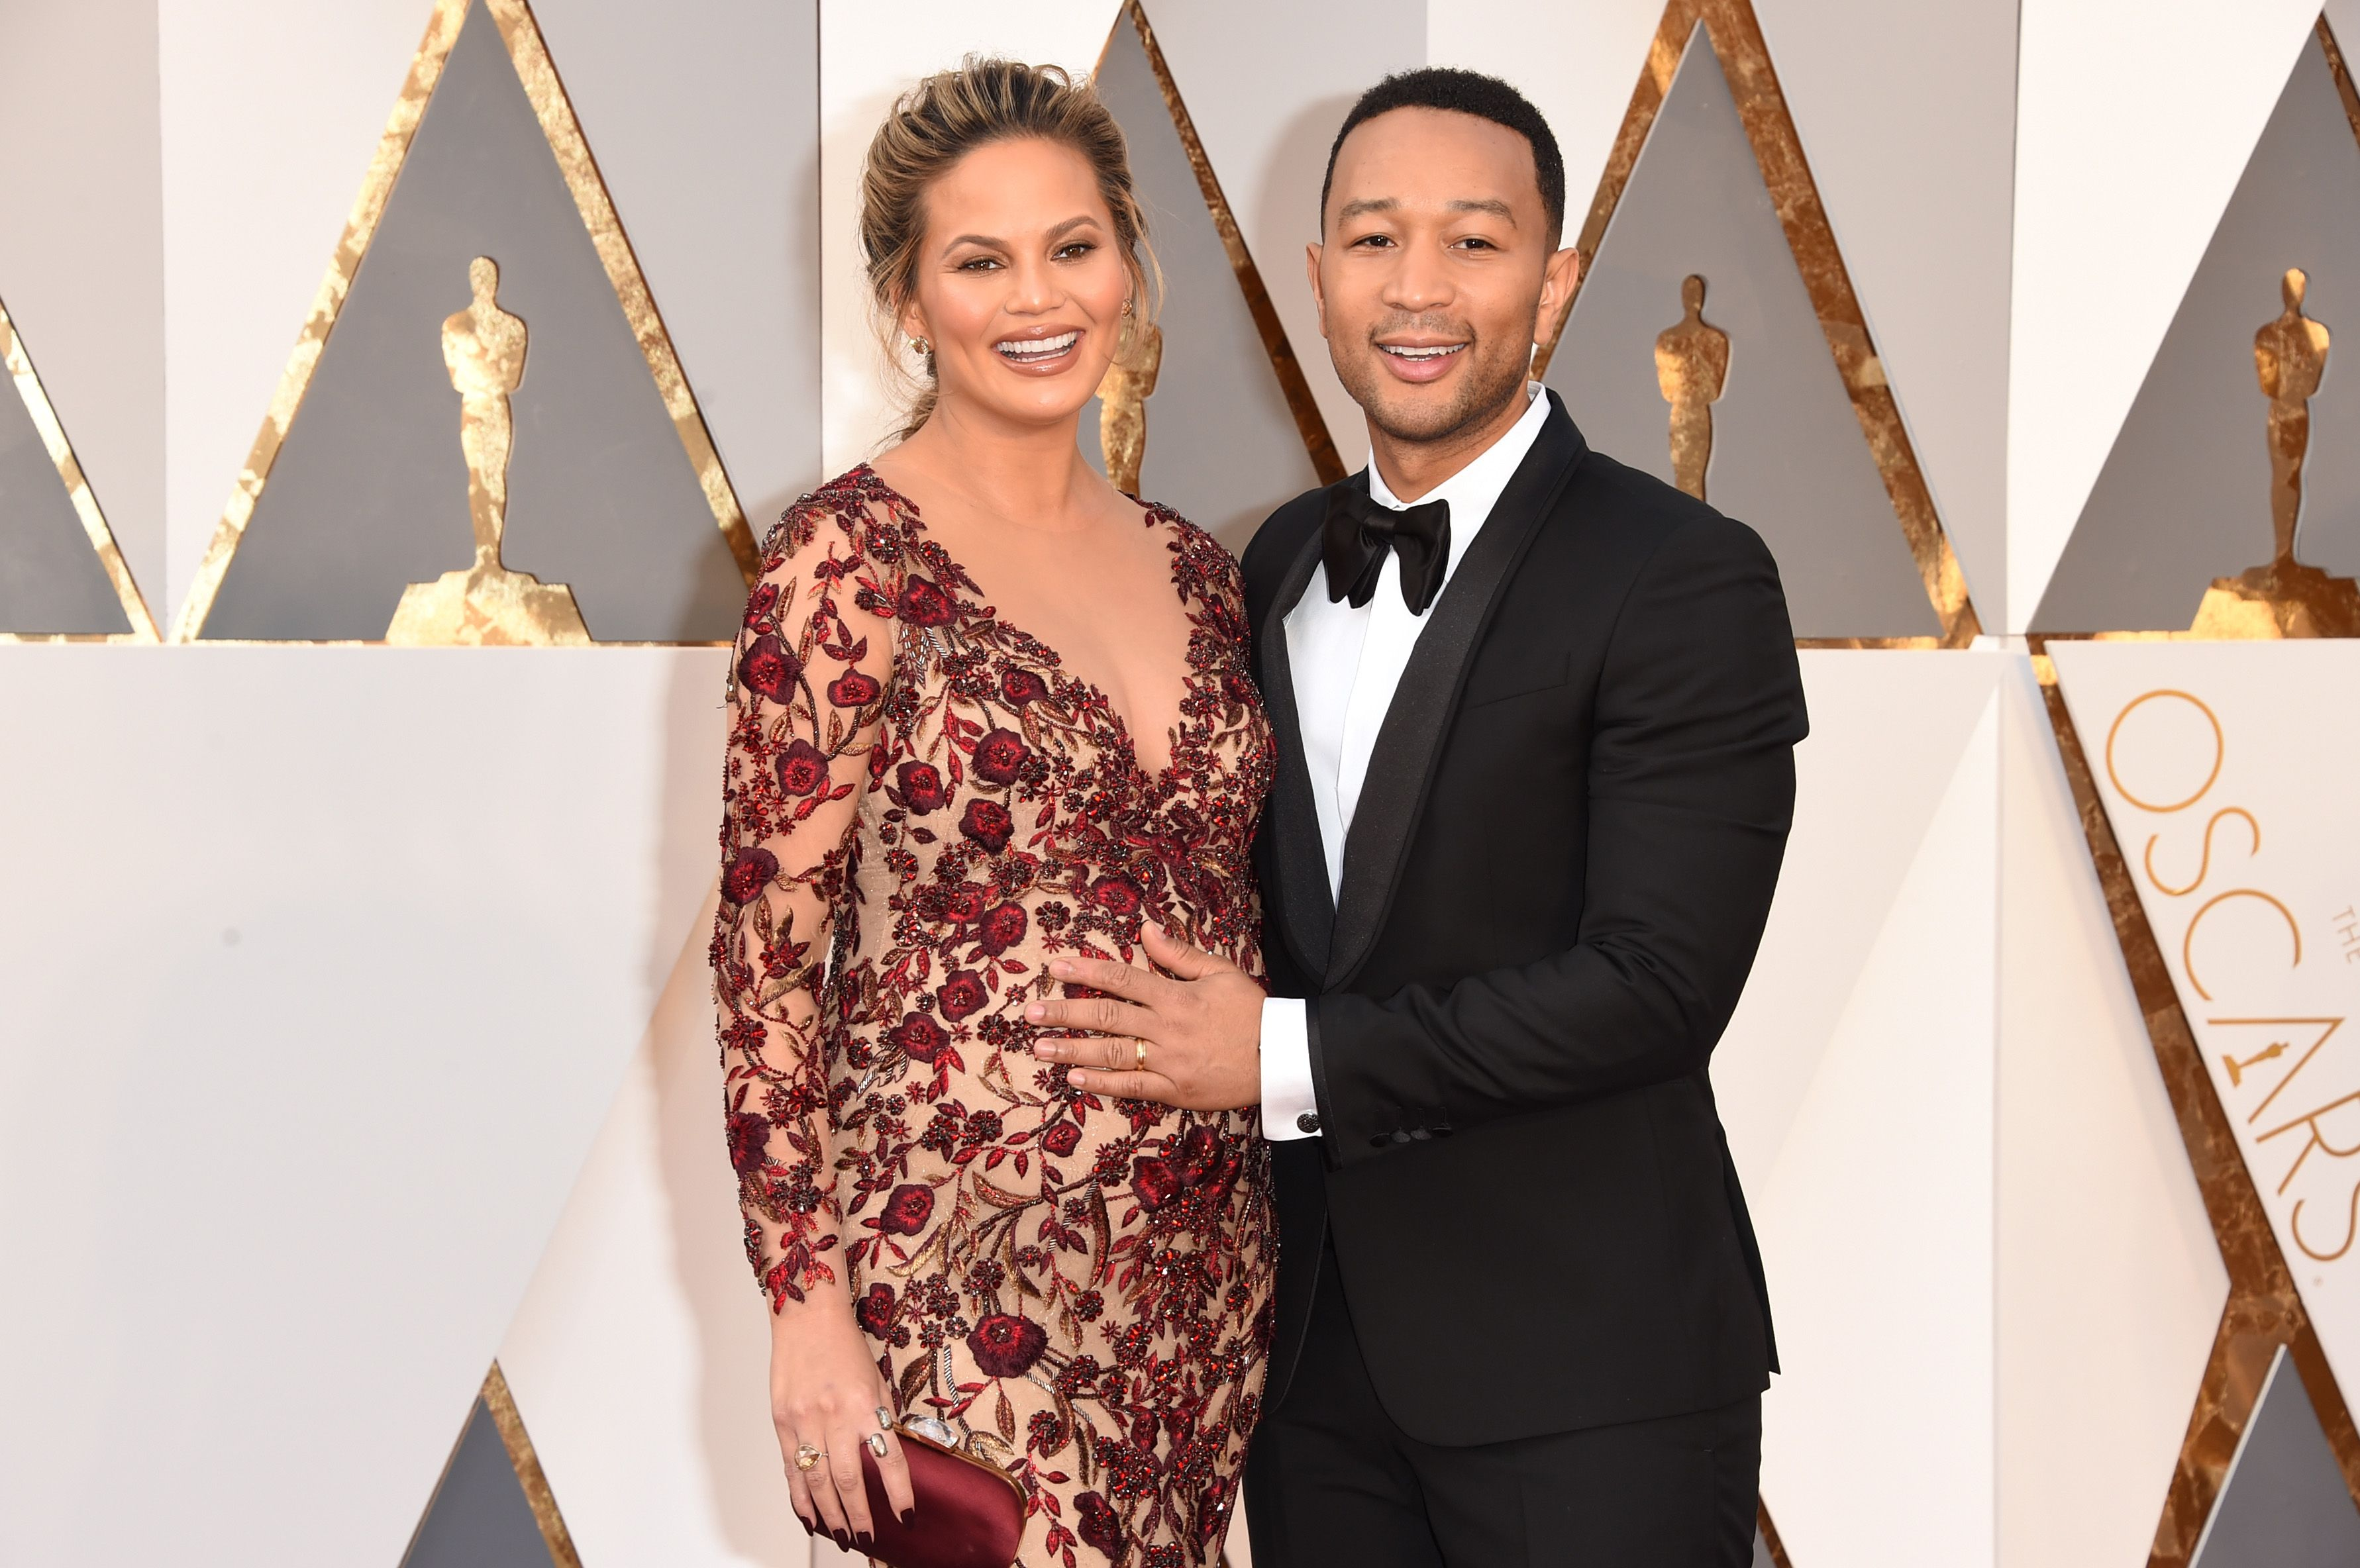 Chrissy Teigen and John Legend at the 88th Annual Academy Awards in 2016 in Hollywood, California   Source: Getty Images